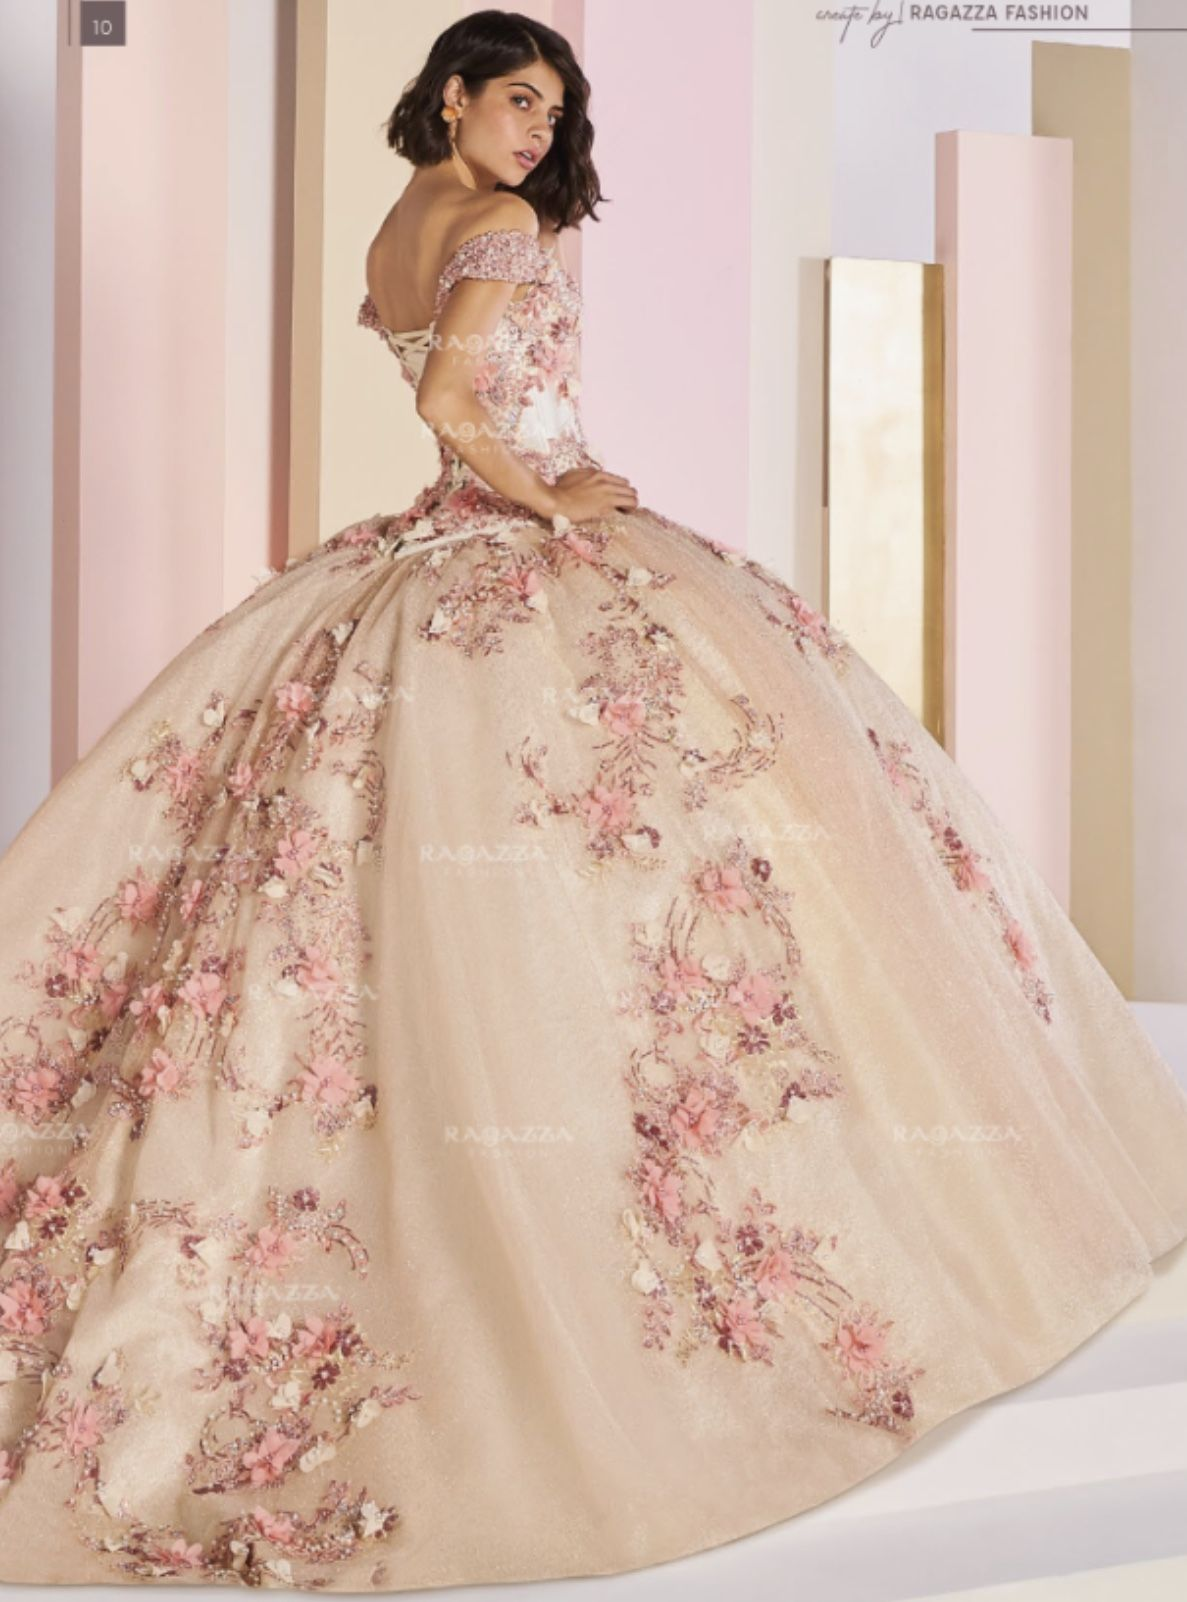 f278904c05 Quinceanera dress by Ragazza - Ether D03-503